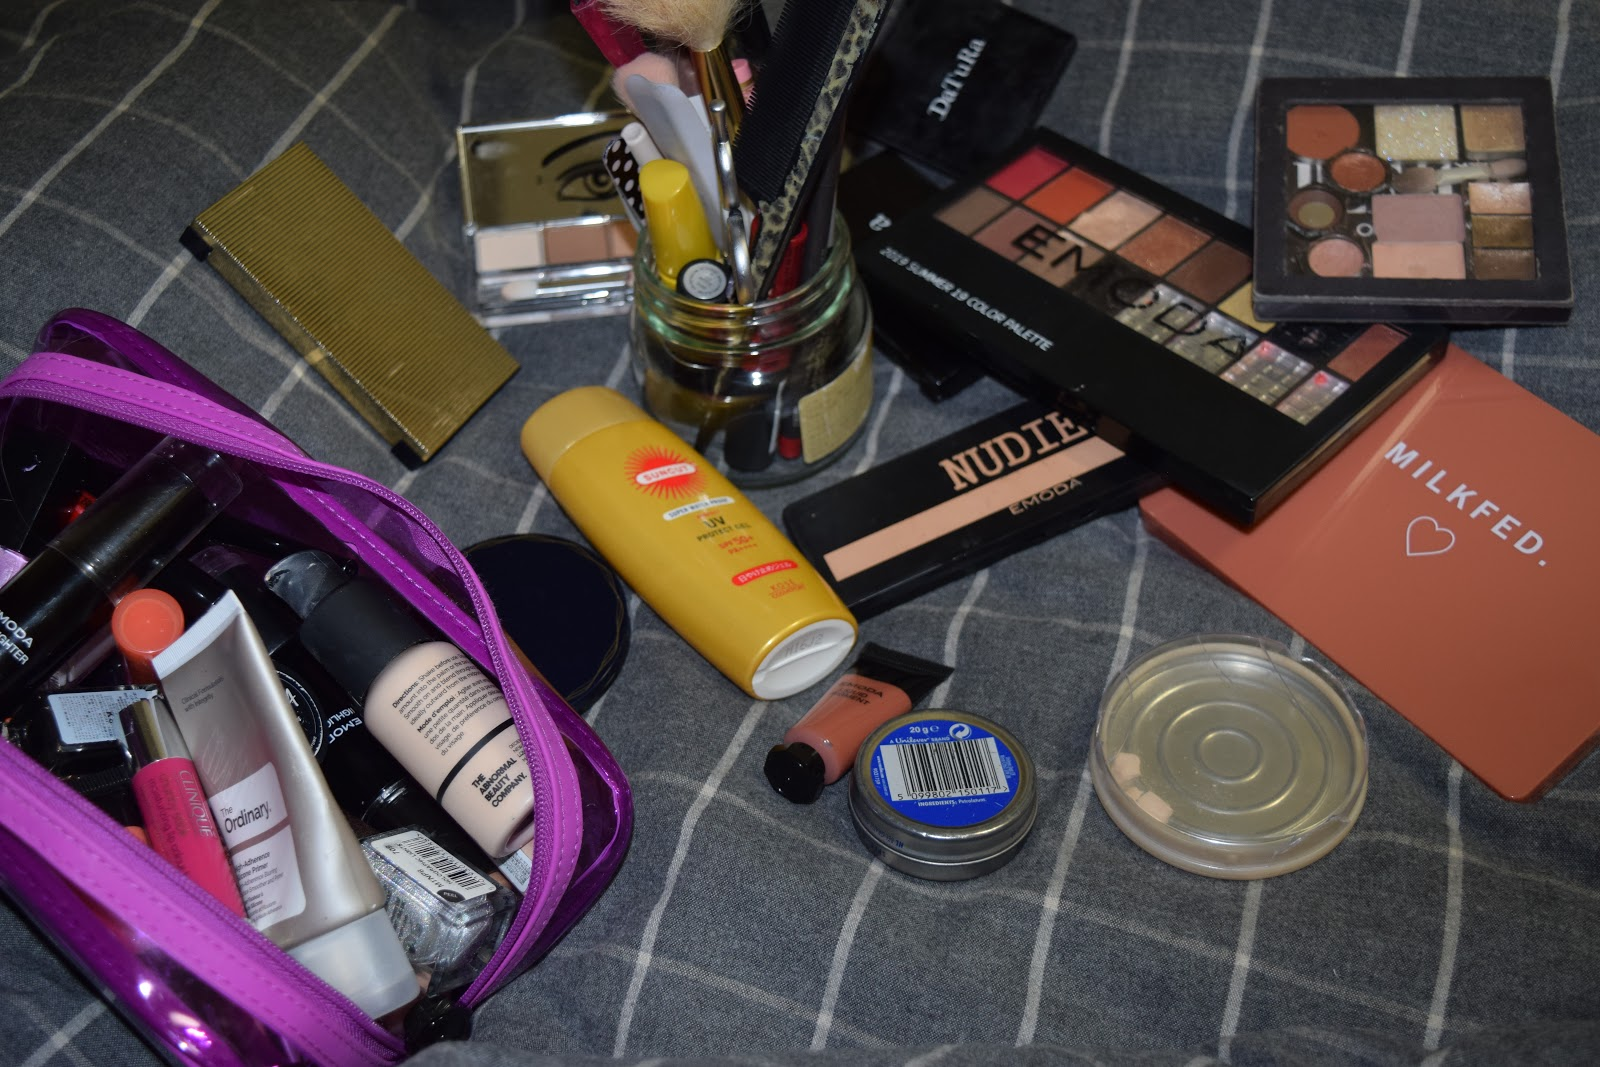 my makeup collection- palettes, a jar full of pencils and tools, a pouch full of lip products and